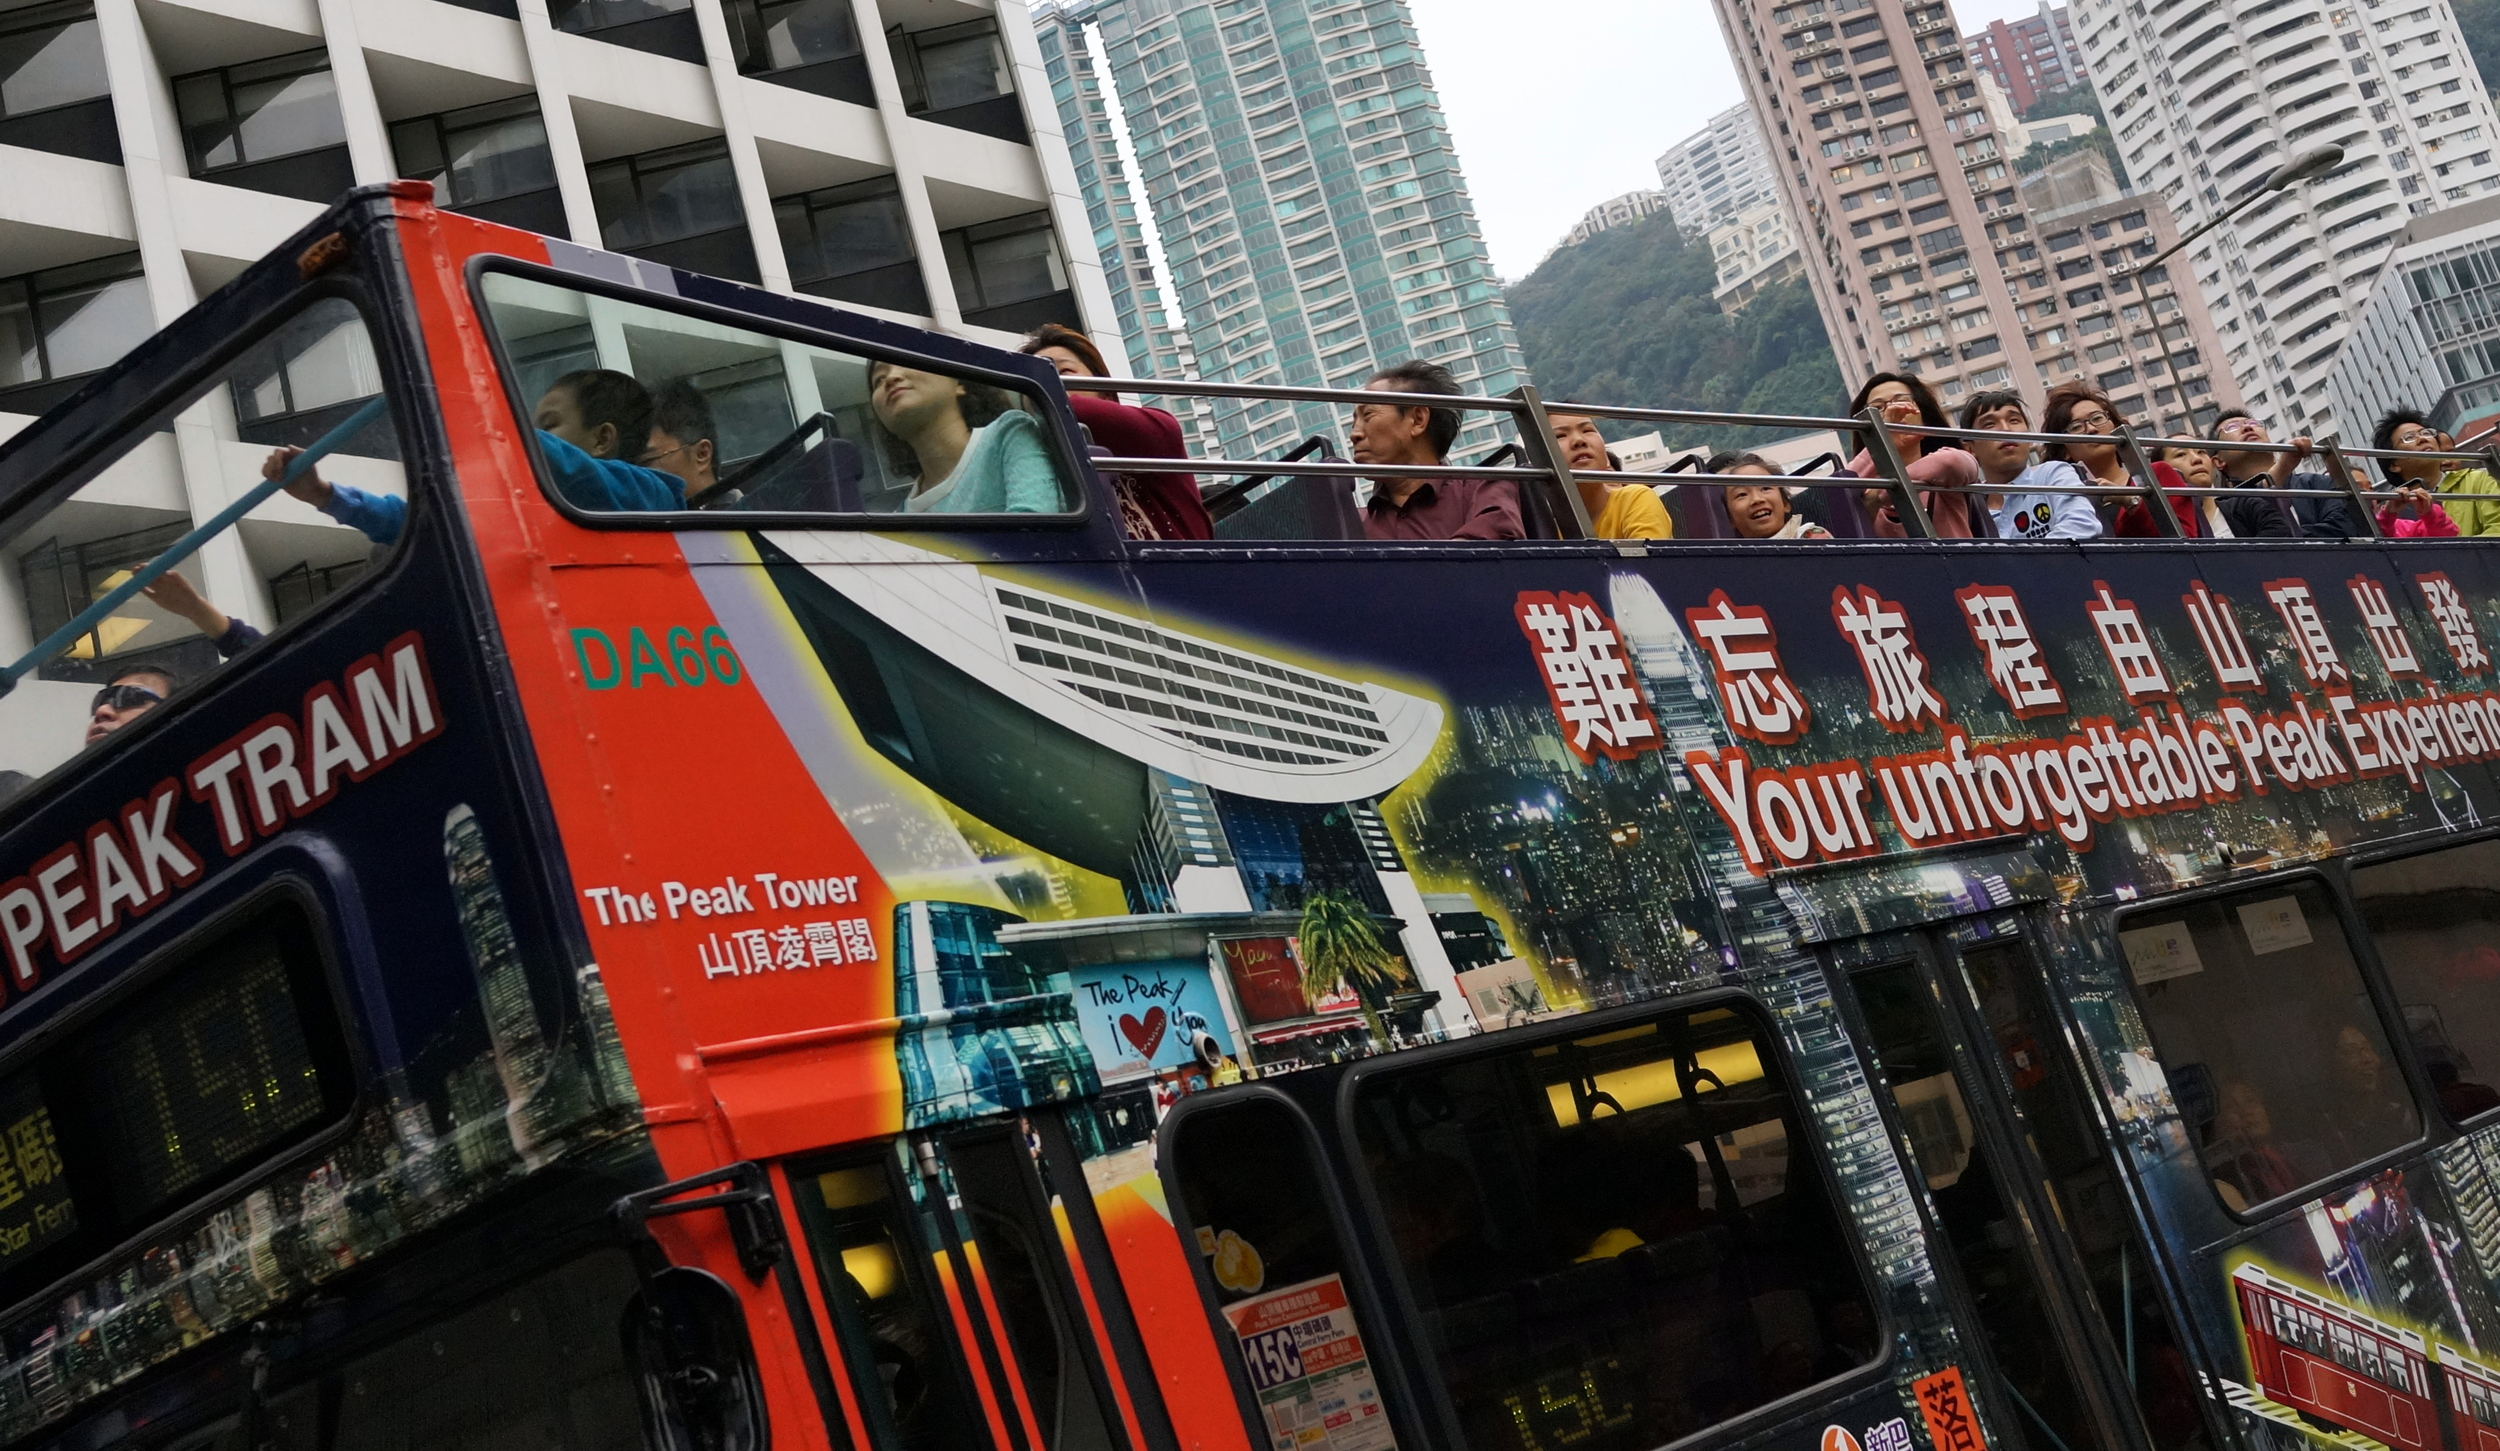 The Peak Tram Bus an unforgettable journey yes, for all the wrong reasons.....